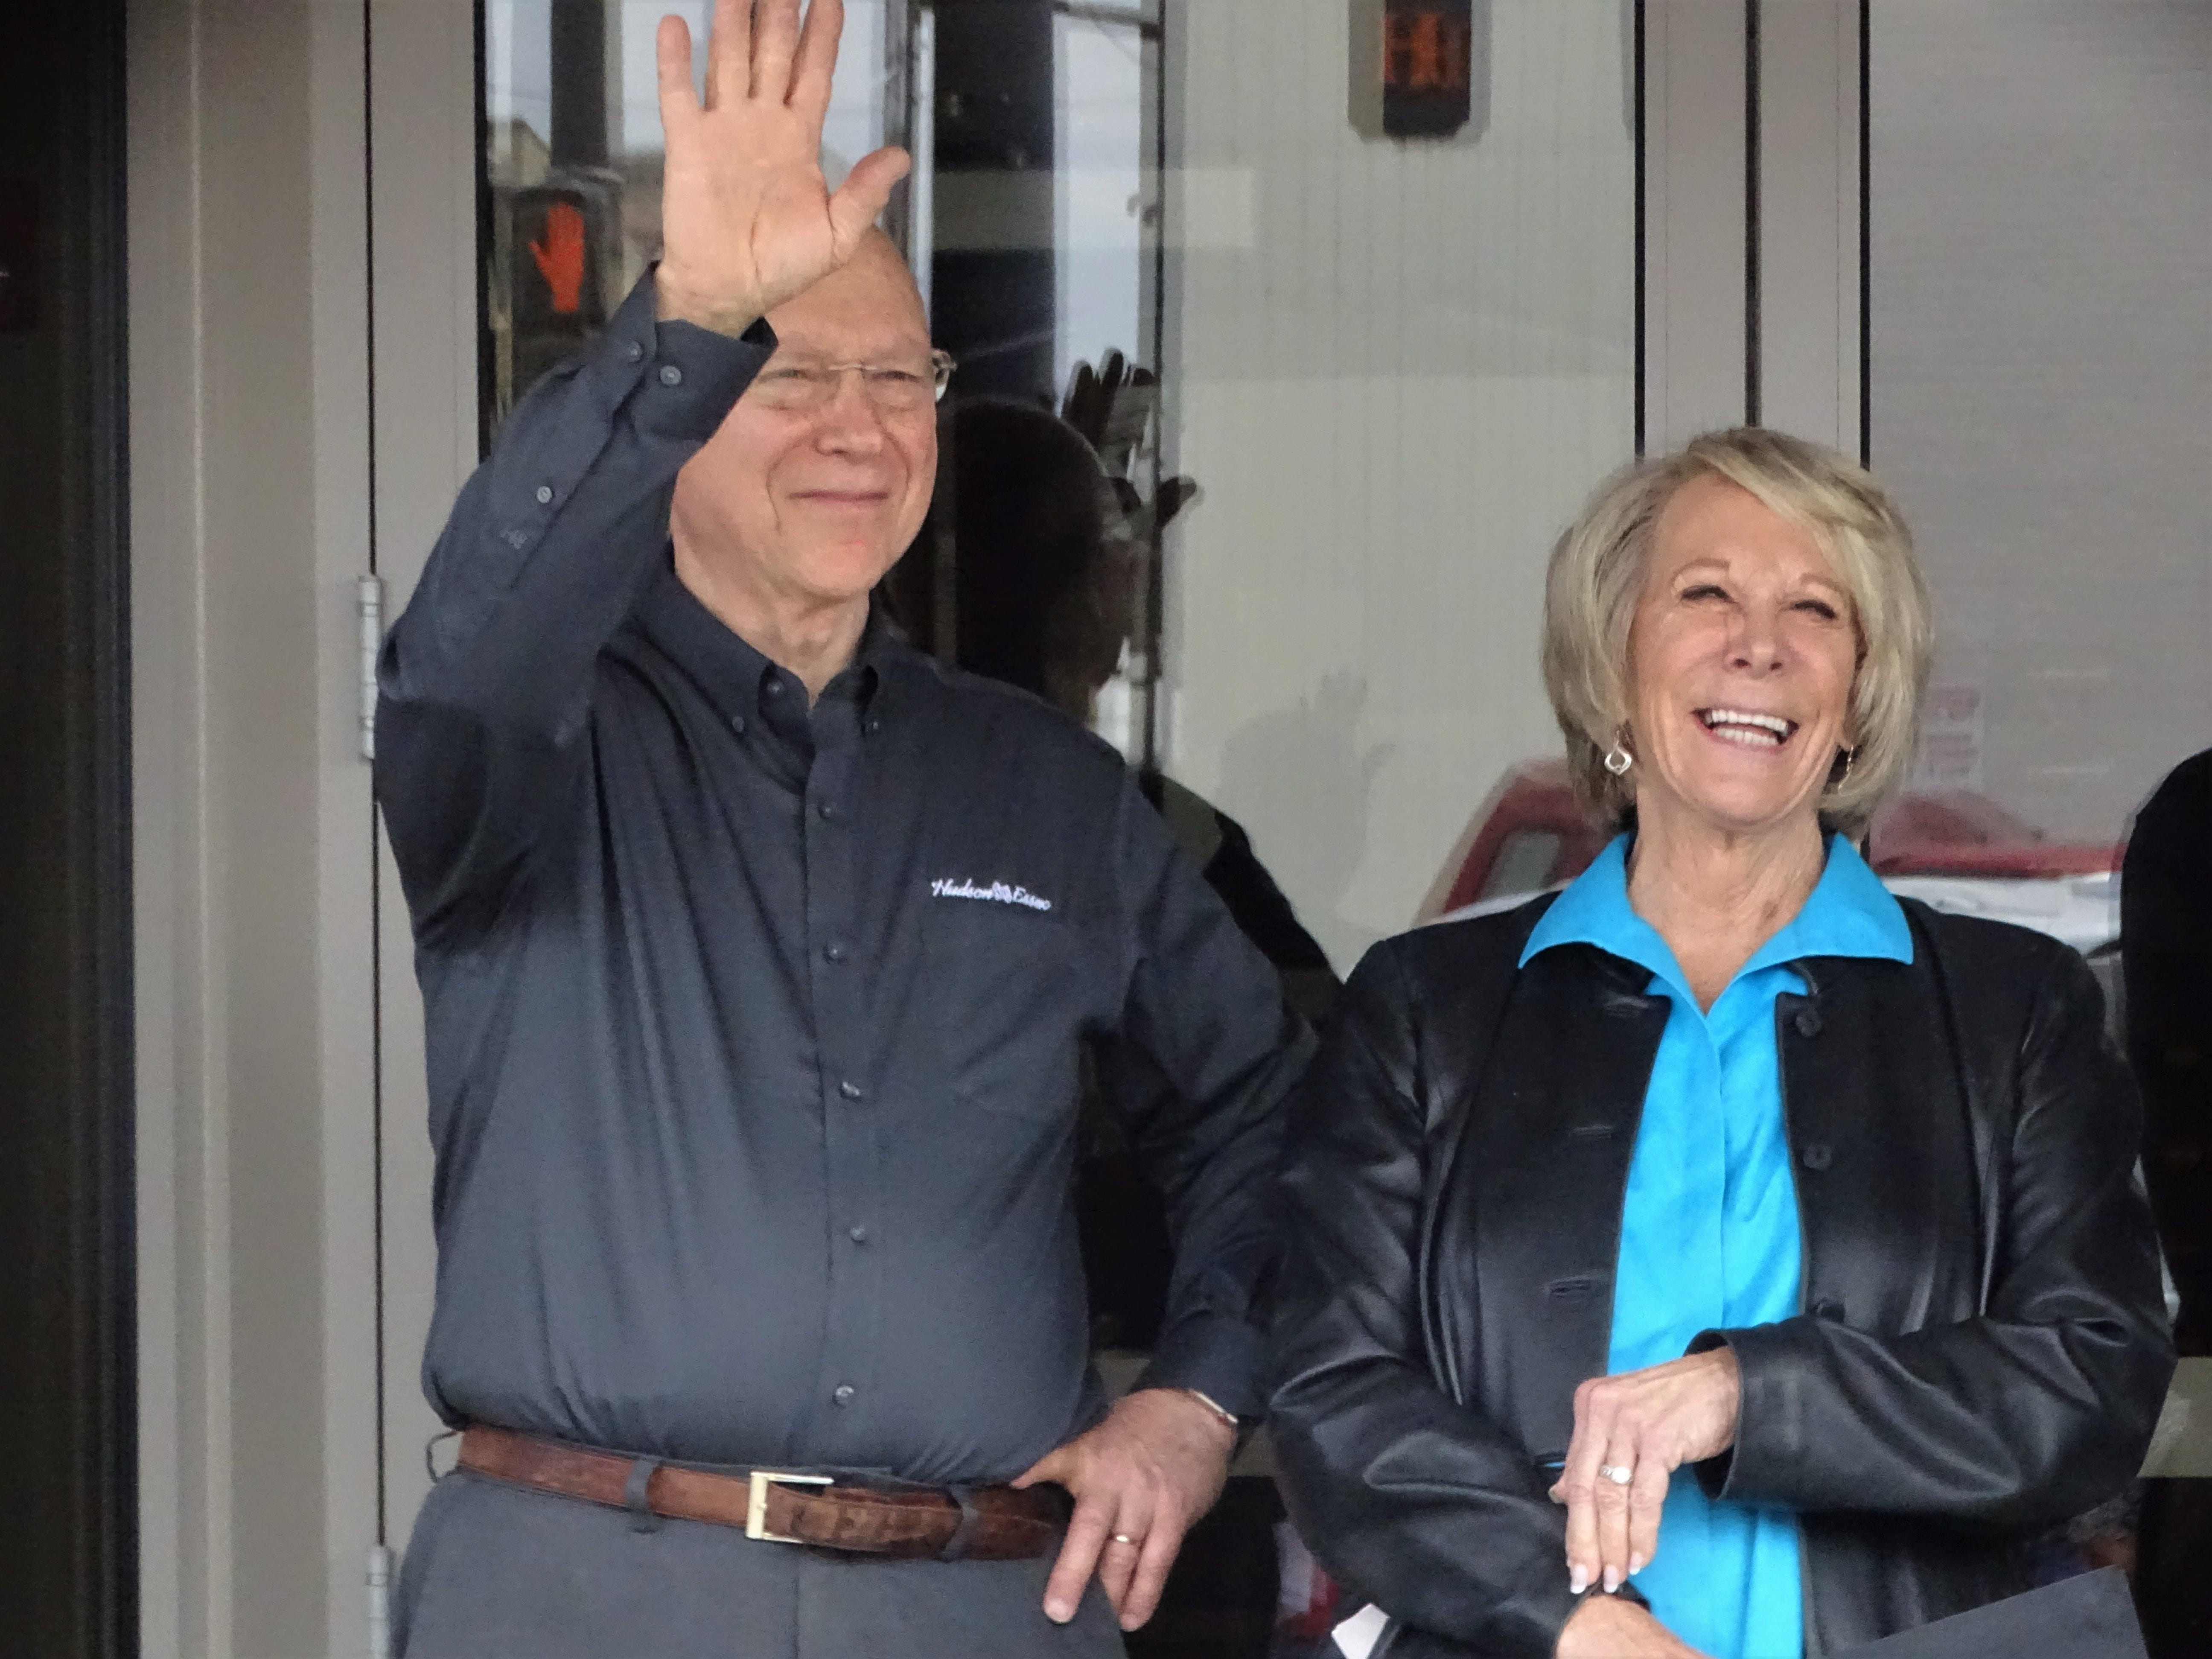 Owners Rick Taylor, waving to a friend in the crowd, and Carol Taylor celebrate the opening of their Hudson and Essex Deli on Wednesday.